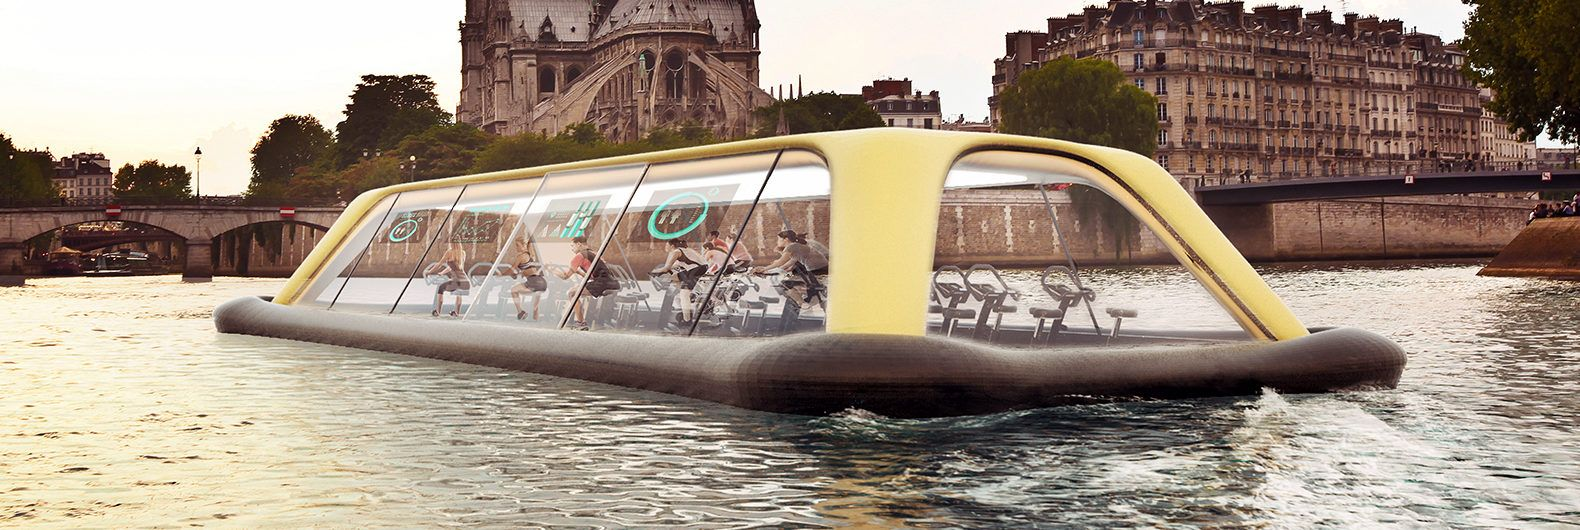 Floating gym will move on the Seine due to the energy of its visitors 58